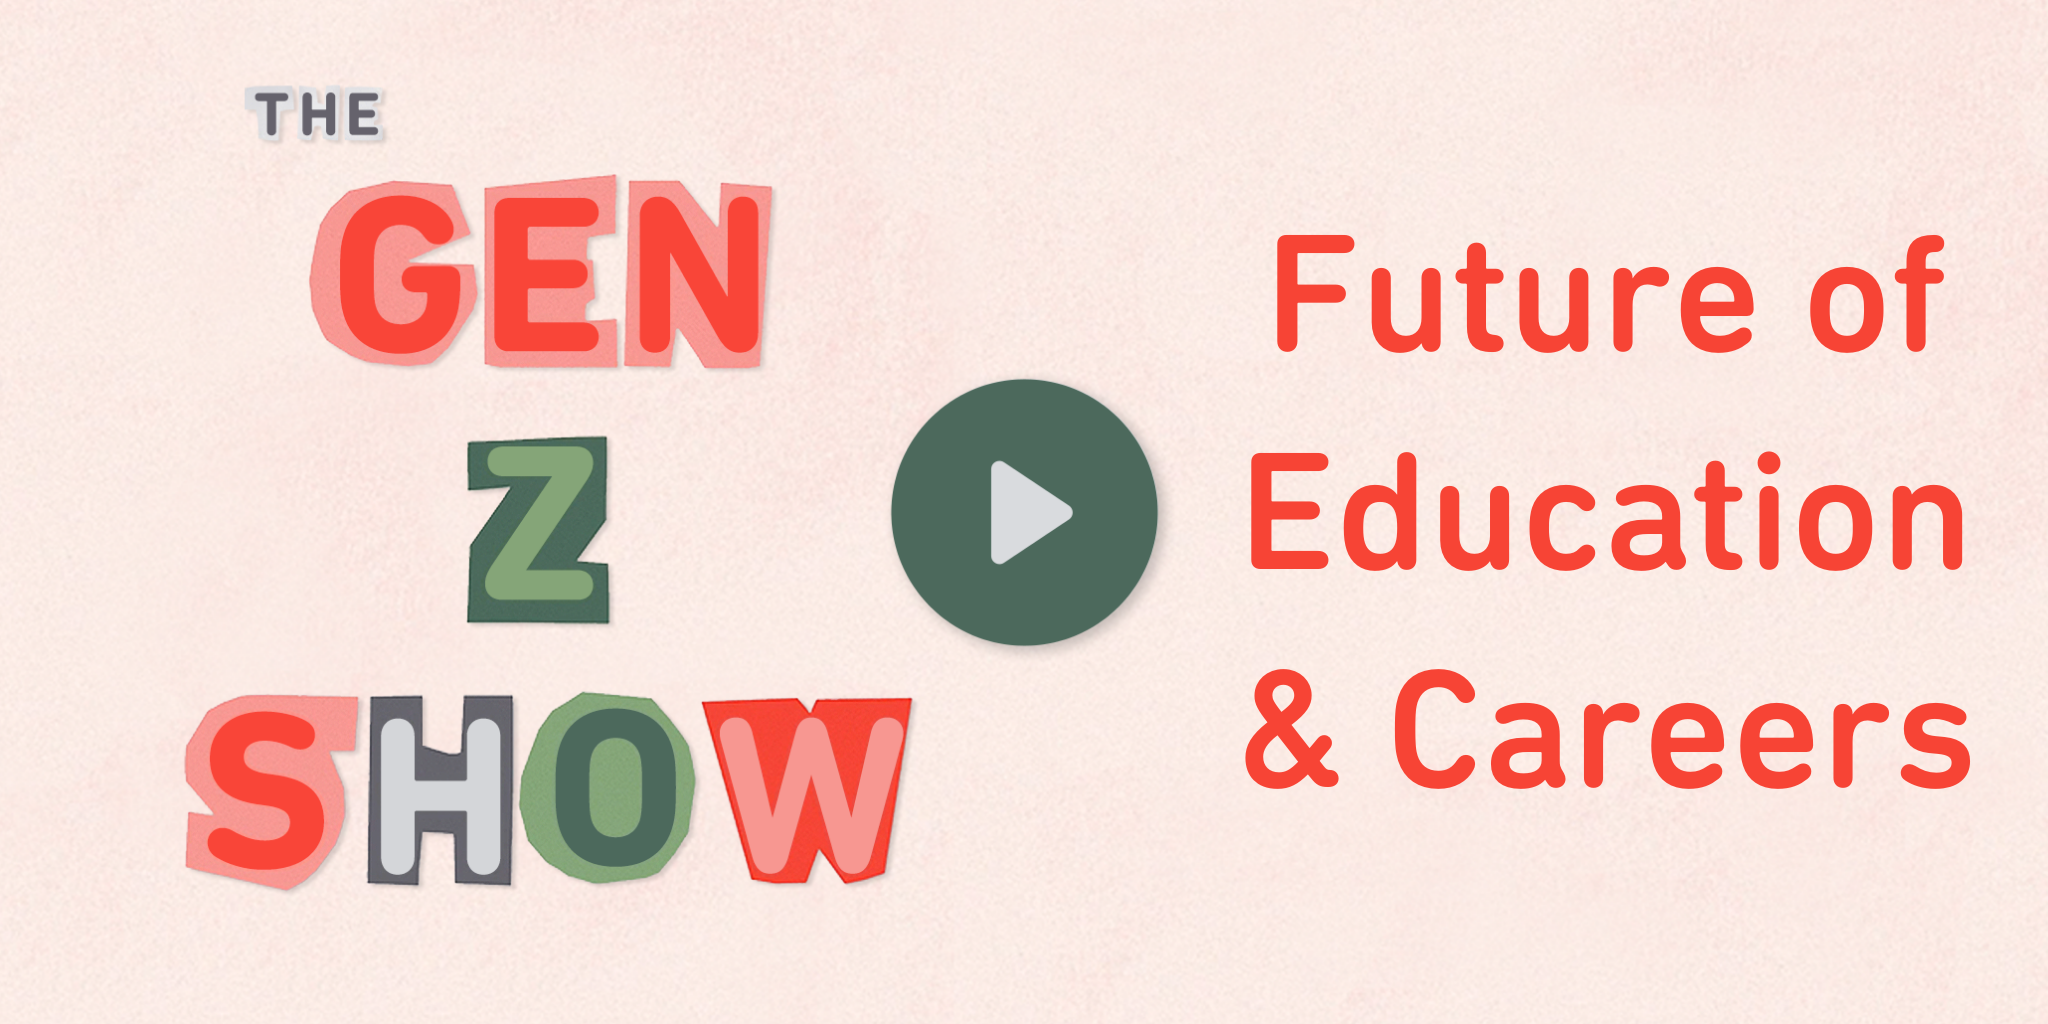 The Gen Z Show with The Knowledge Society: Future of Education and Careers